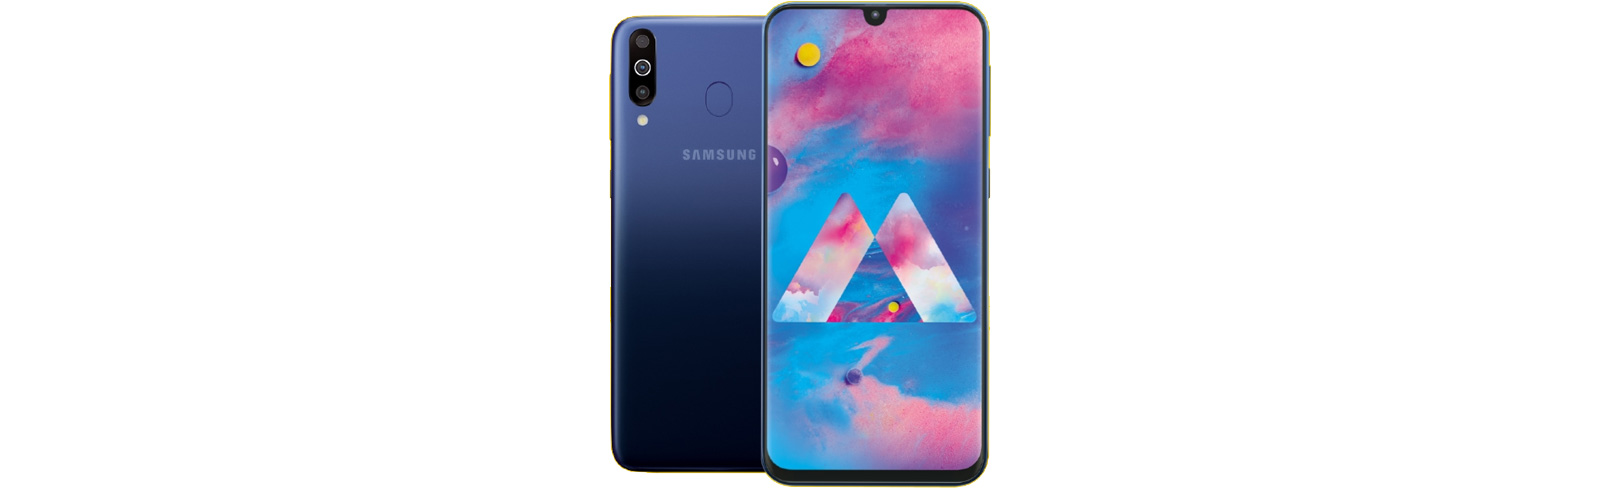 Samsung India adds the Galaxy M30 to its Galaxy M series